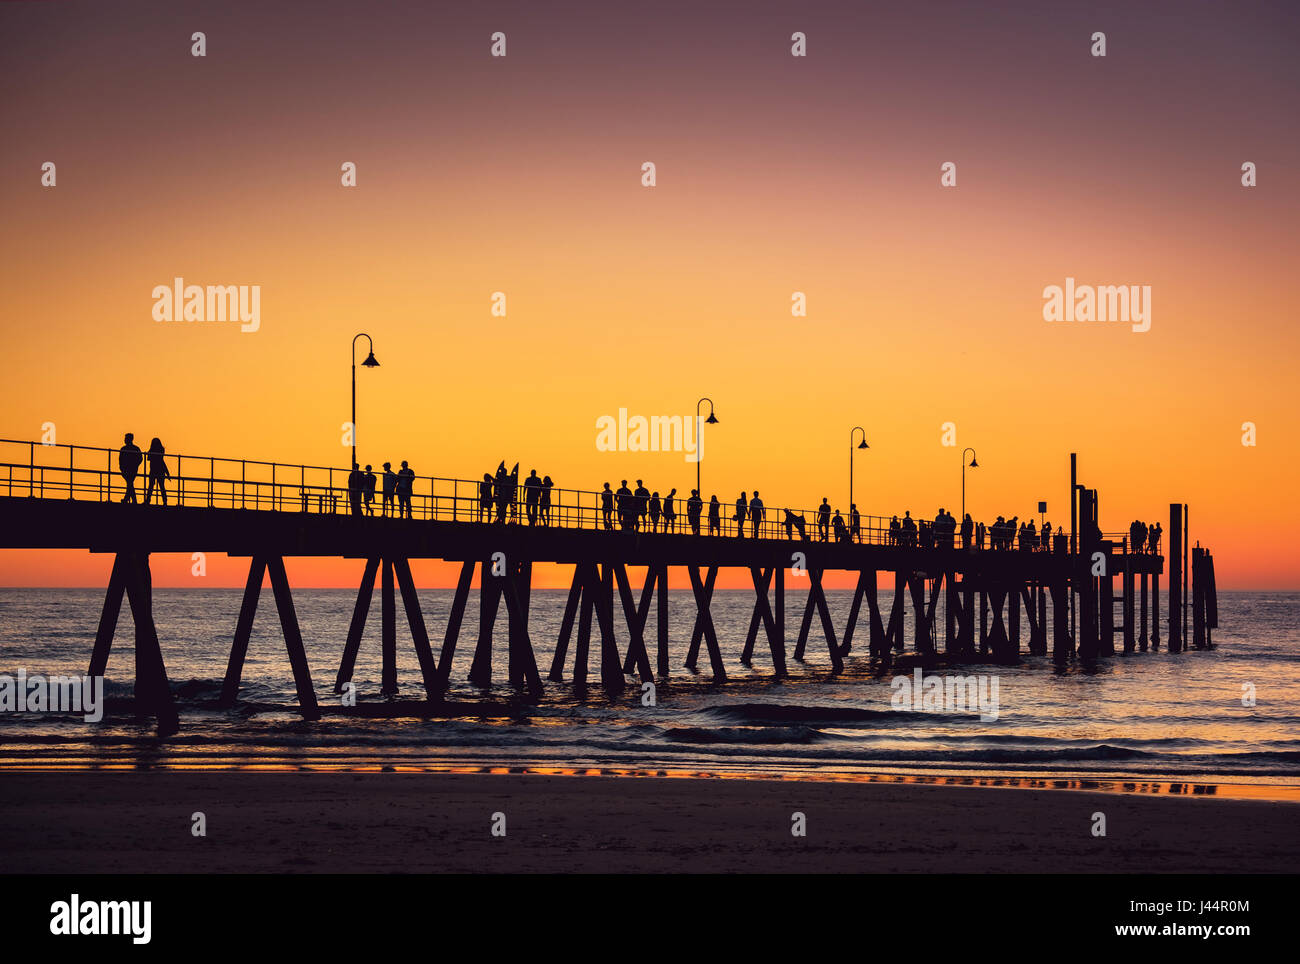 Glenelg beach jetty with people at sunset, Adelaide, South Australia - Stock Image